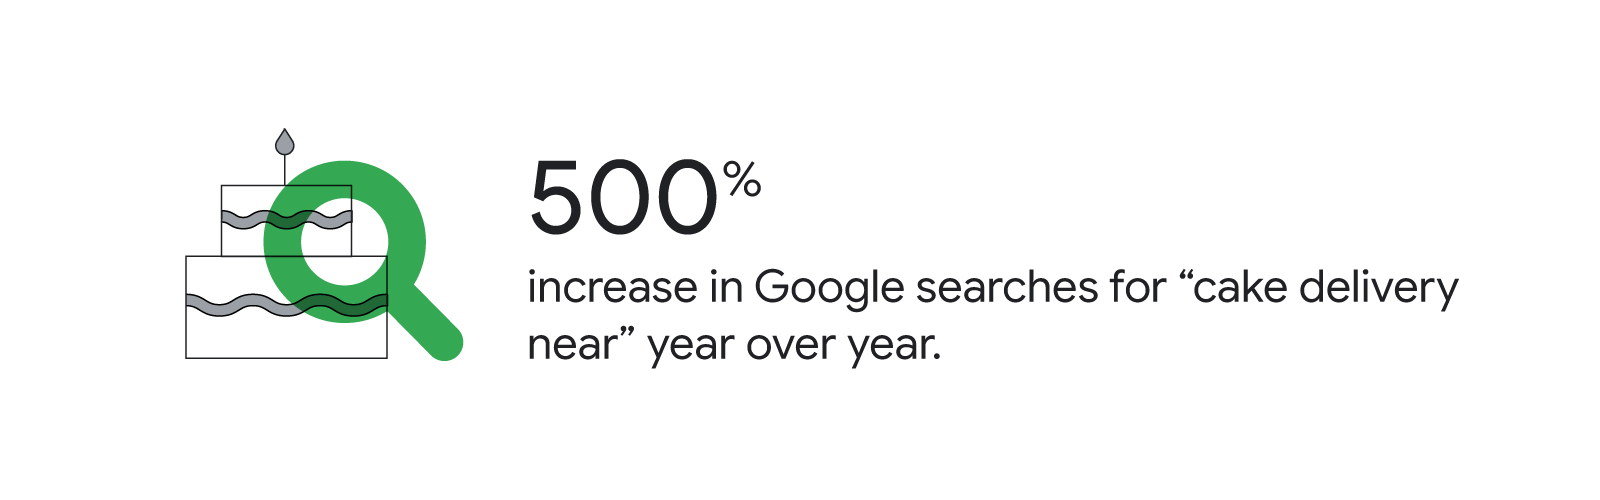 """A green magnifying glass hovers over a line drawing of a two-tiered birthday cake. Text reads: 500% increase in Google searches for """"cake delivery near"""" year over year."""